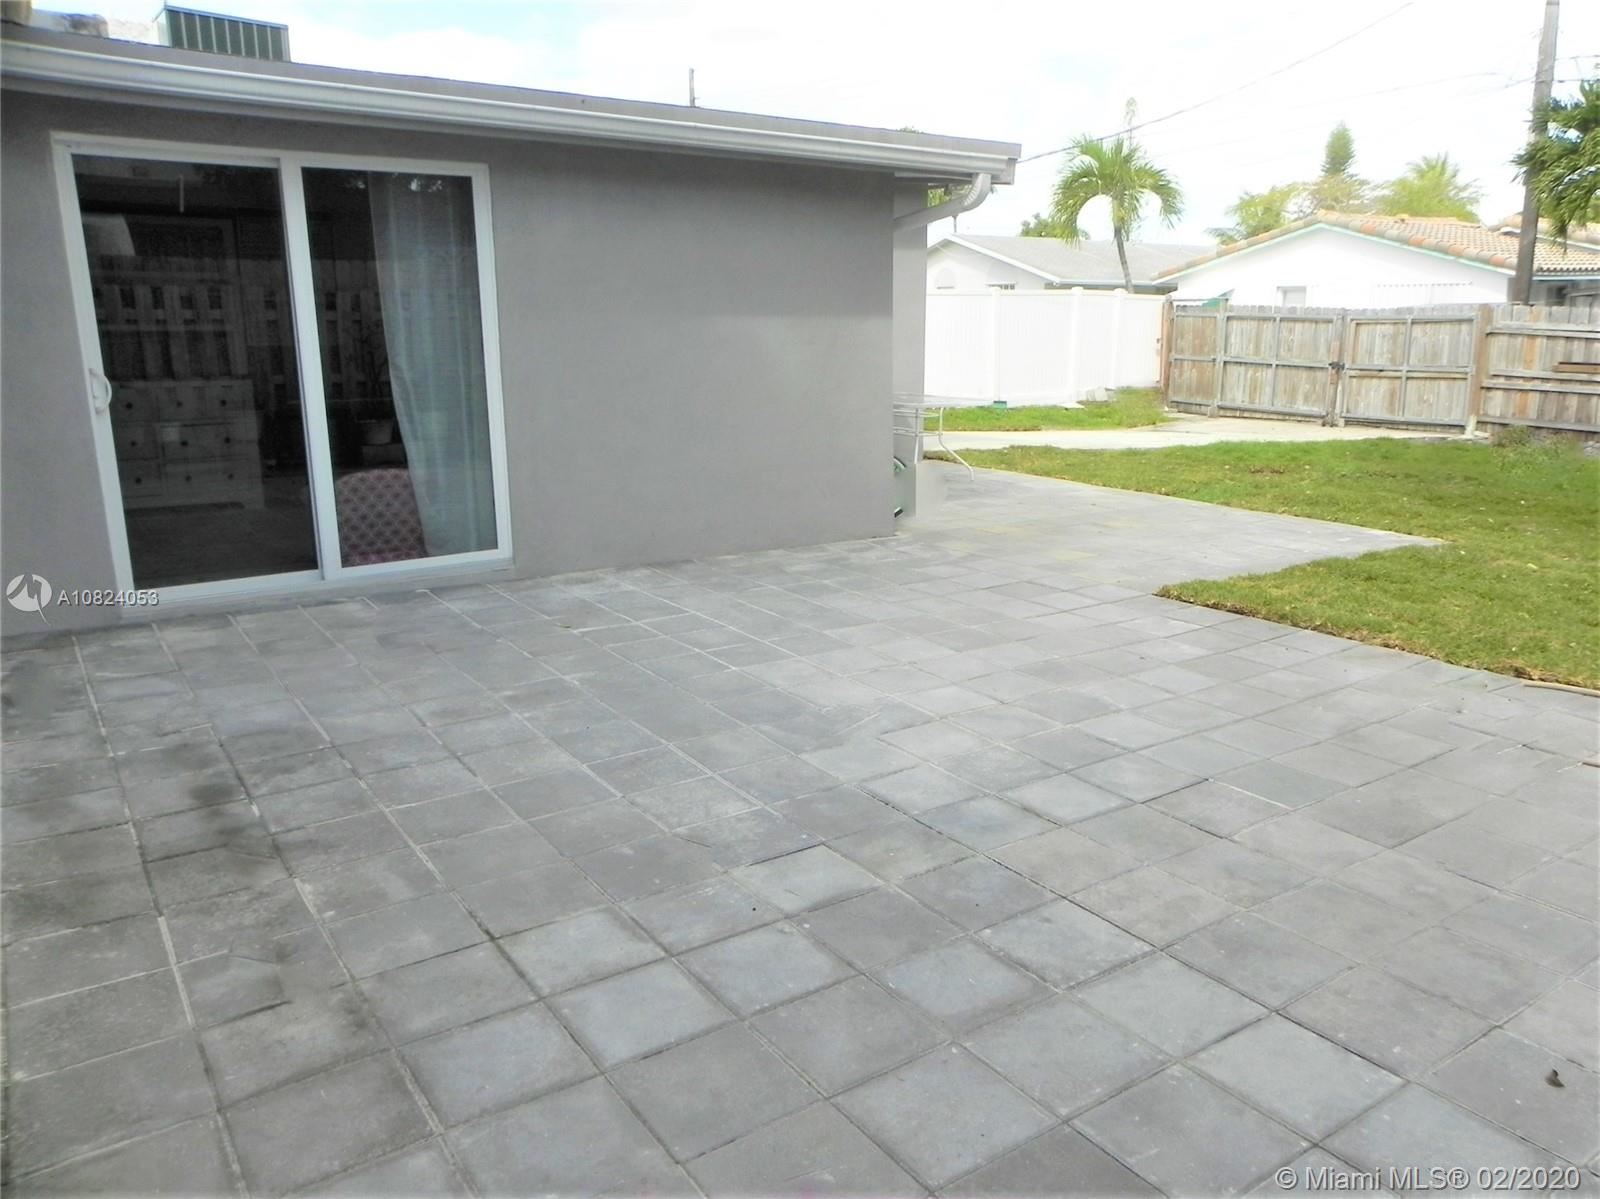 Photo 19 of Listing MLS a10824053 in 1531 Johnson St Hollywood FL 33020